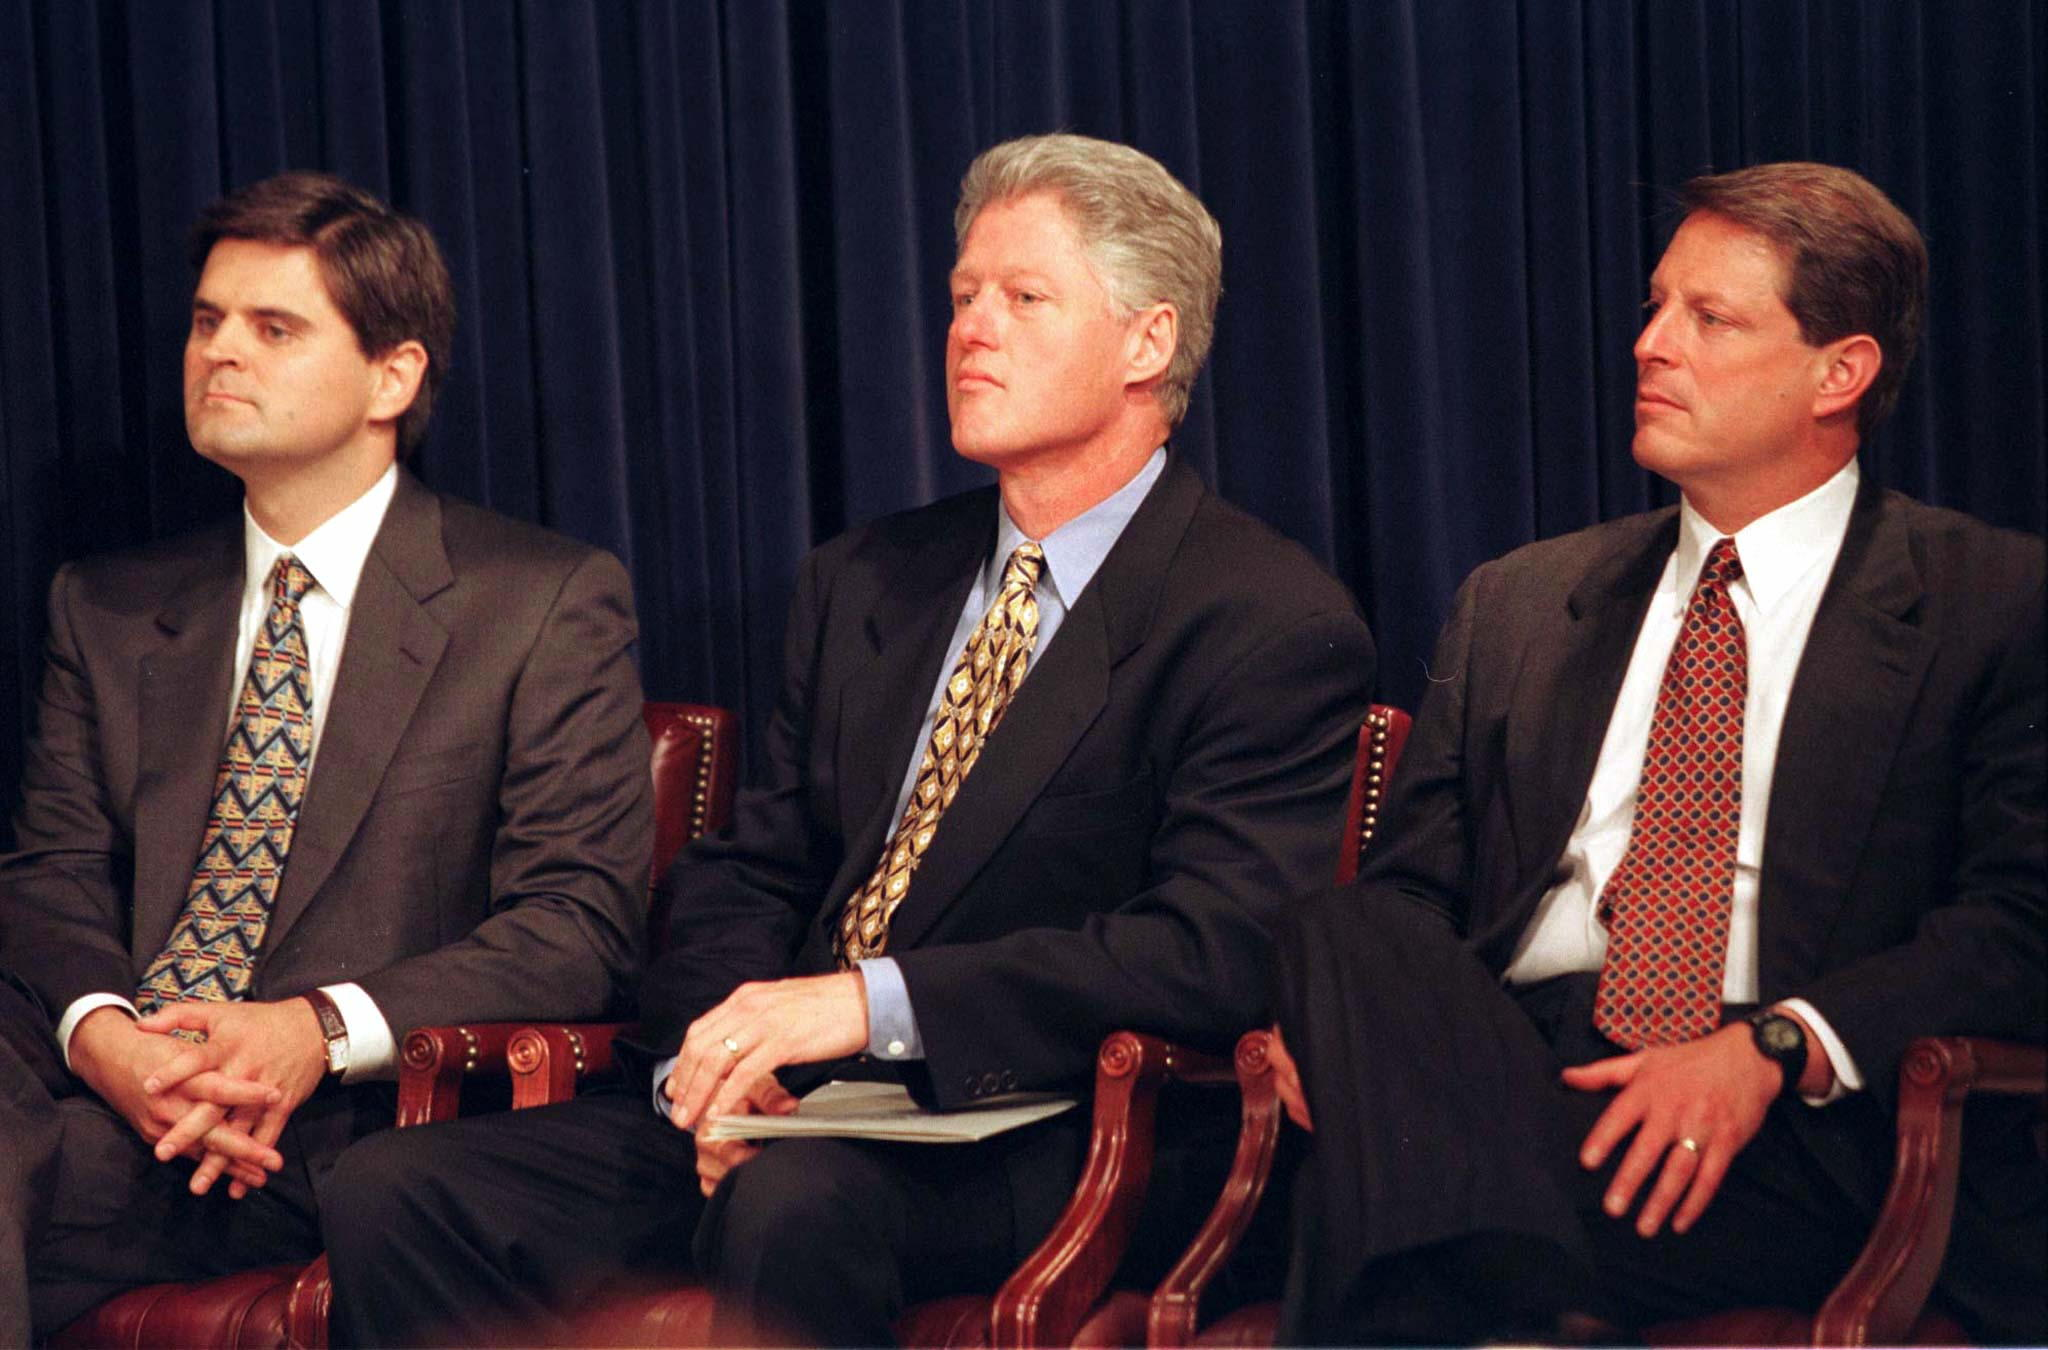 America Online chairman Steve Case (L) meets with President Clinton and Vice President Al Gore to seek a new approach for protecting children from Internet pornography without calling for new laws or extensive government intervention in cyberspace, July 16. Last month, the Supreme Court struck down a law banning indecent material on the Internet as a violation of the First Amendment.